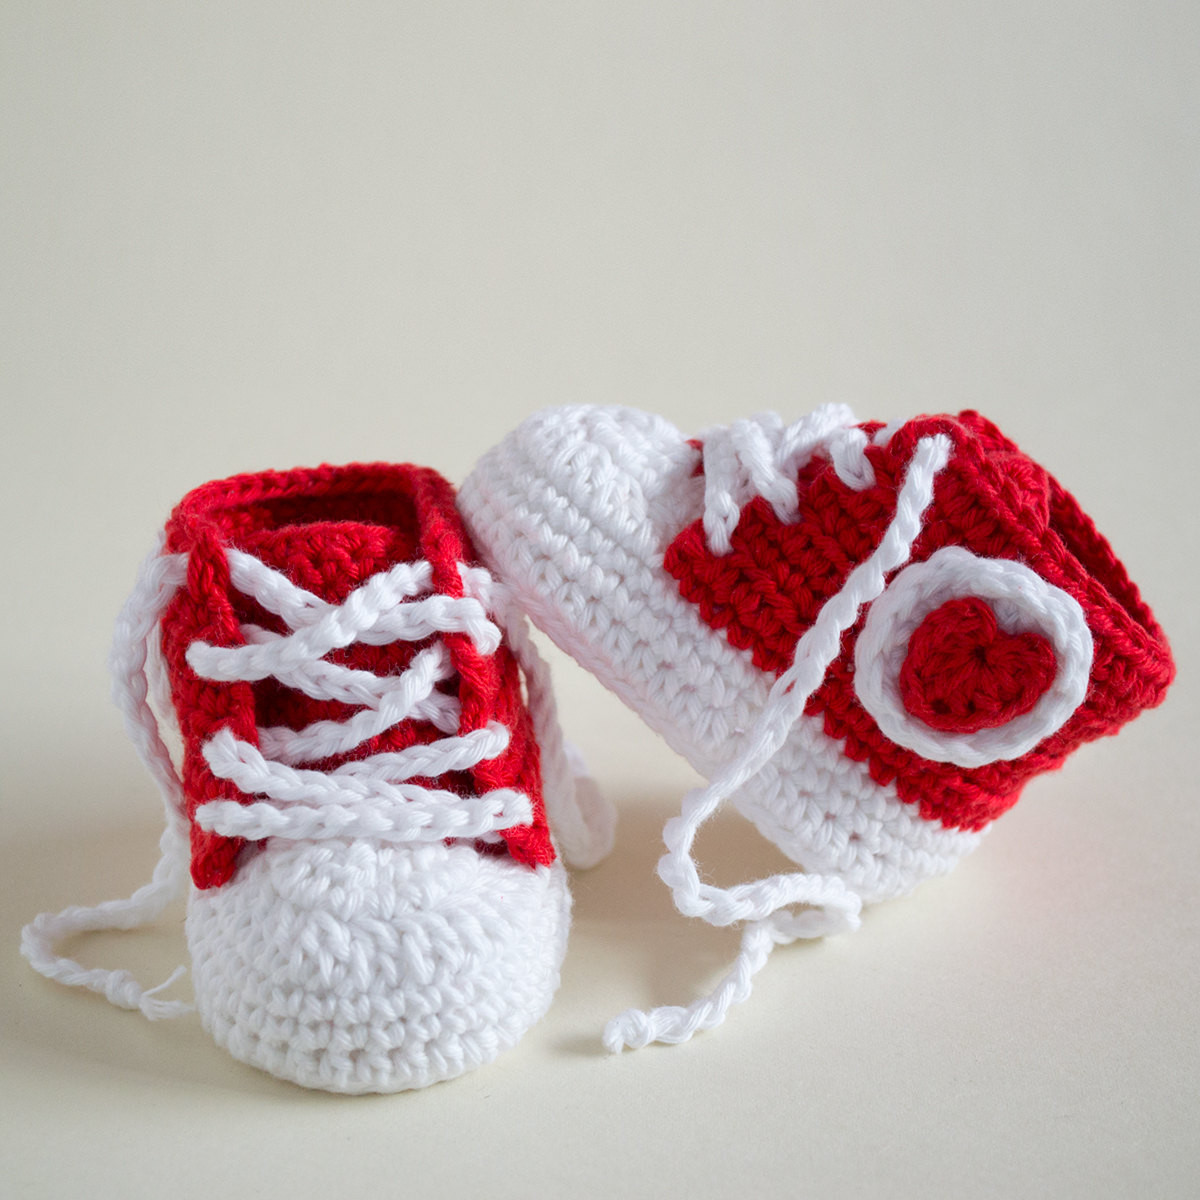 Lovely Crochet Pattern Crochet Baby Booties Fancy Baby Baby Shoes Crochet Baby socks Of New Berry Baby Booties Knitting Pattern Easy Crochet Baby socks